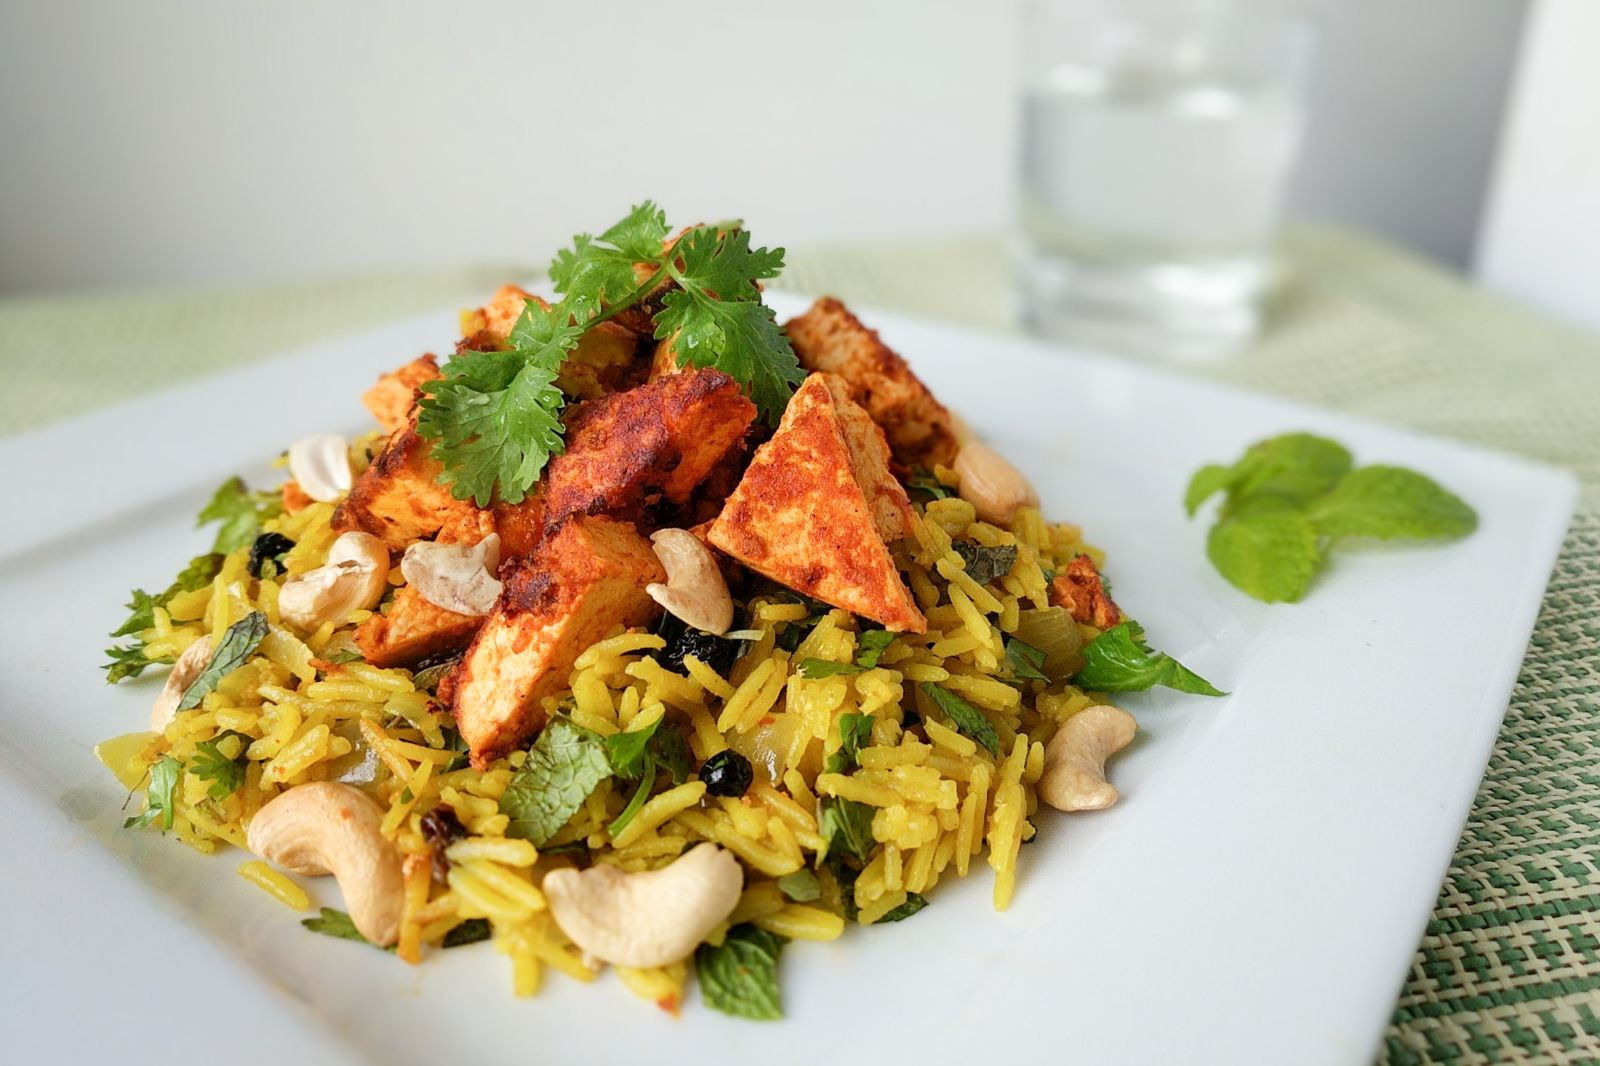 Tandoori tofu with spiced Indian rice, fresh herbs, and cashews